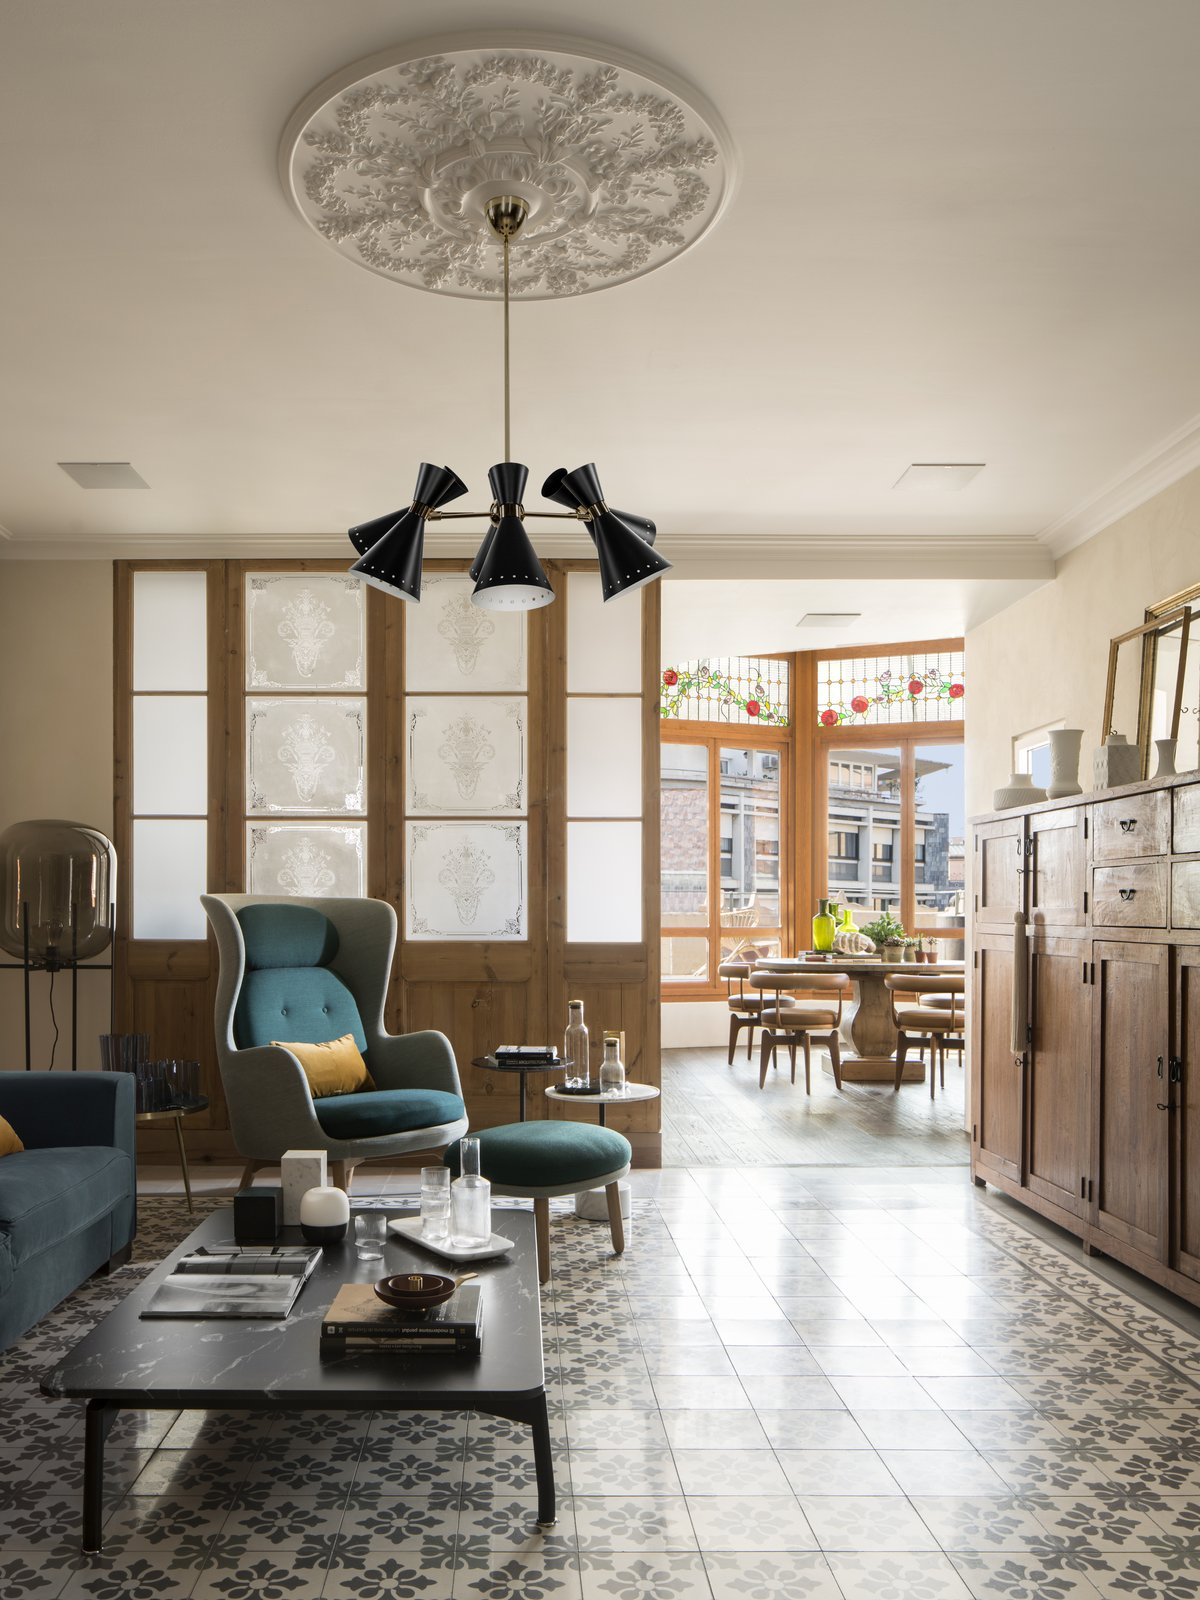 A 1930s Barcelona Apartment Is Revitalized Into an Airy Abode